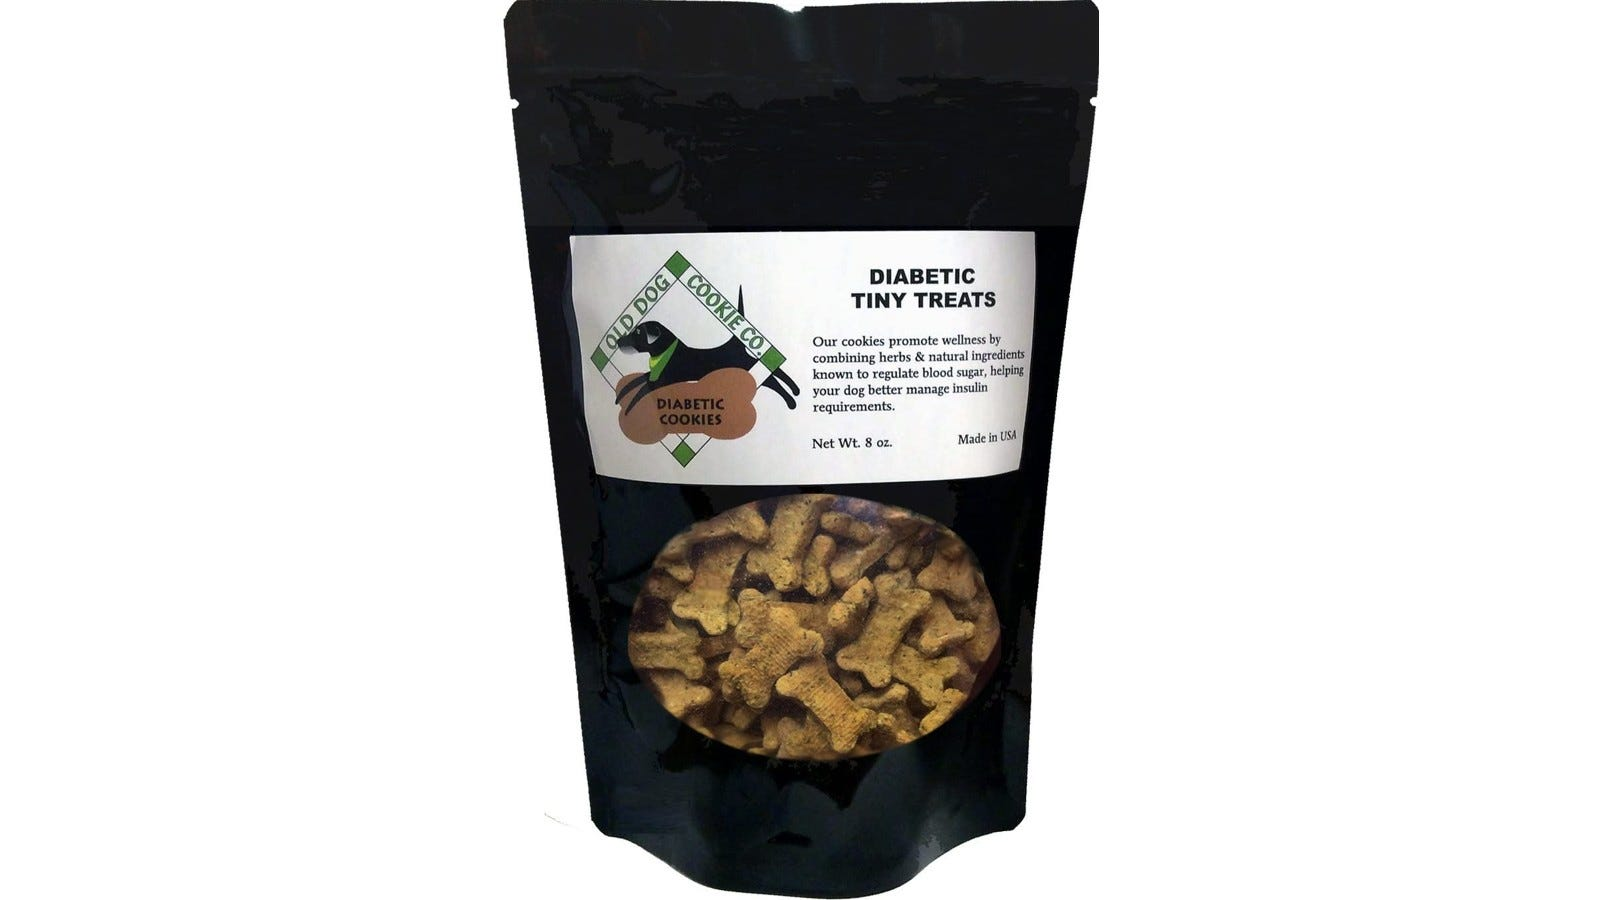 A dog treat made of all-natural herbal ingredients